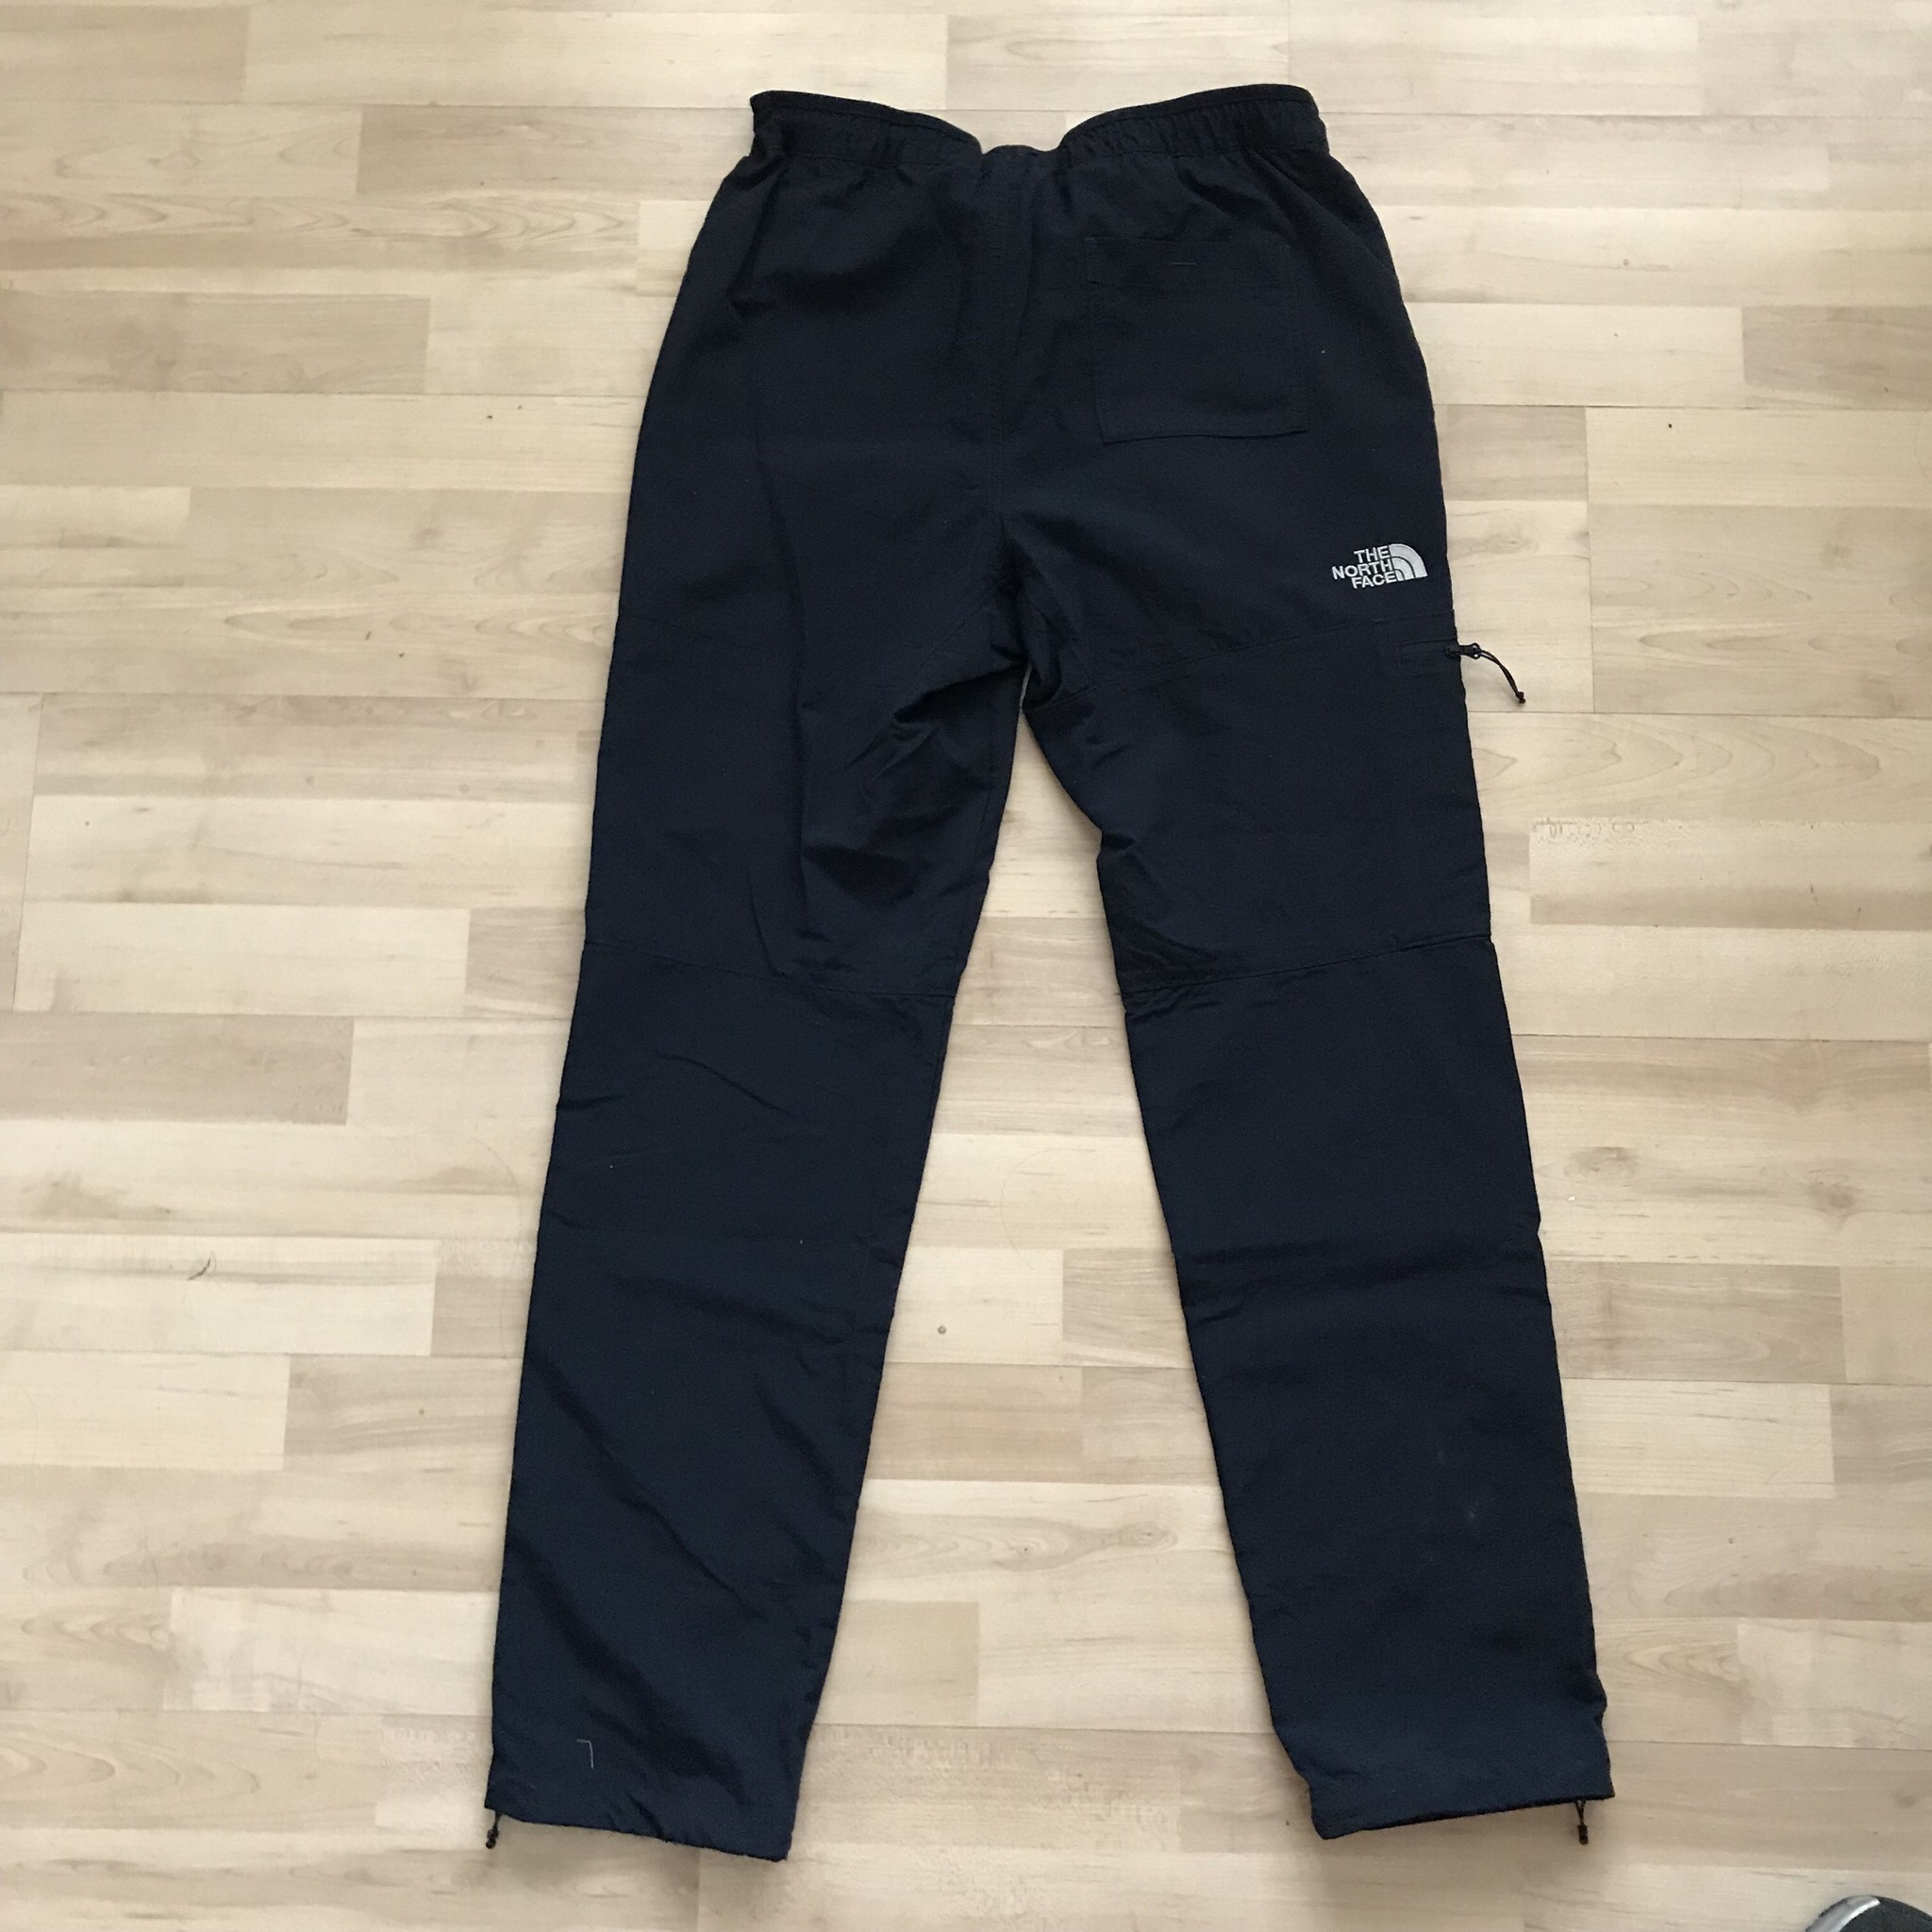 online store online for sale exclusive deals Mens The North Face Cargo Z-Pocket Trousers Navy... - Depop